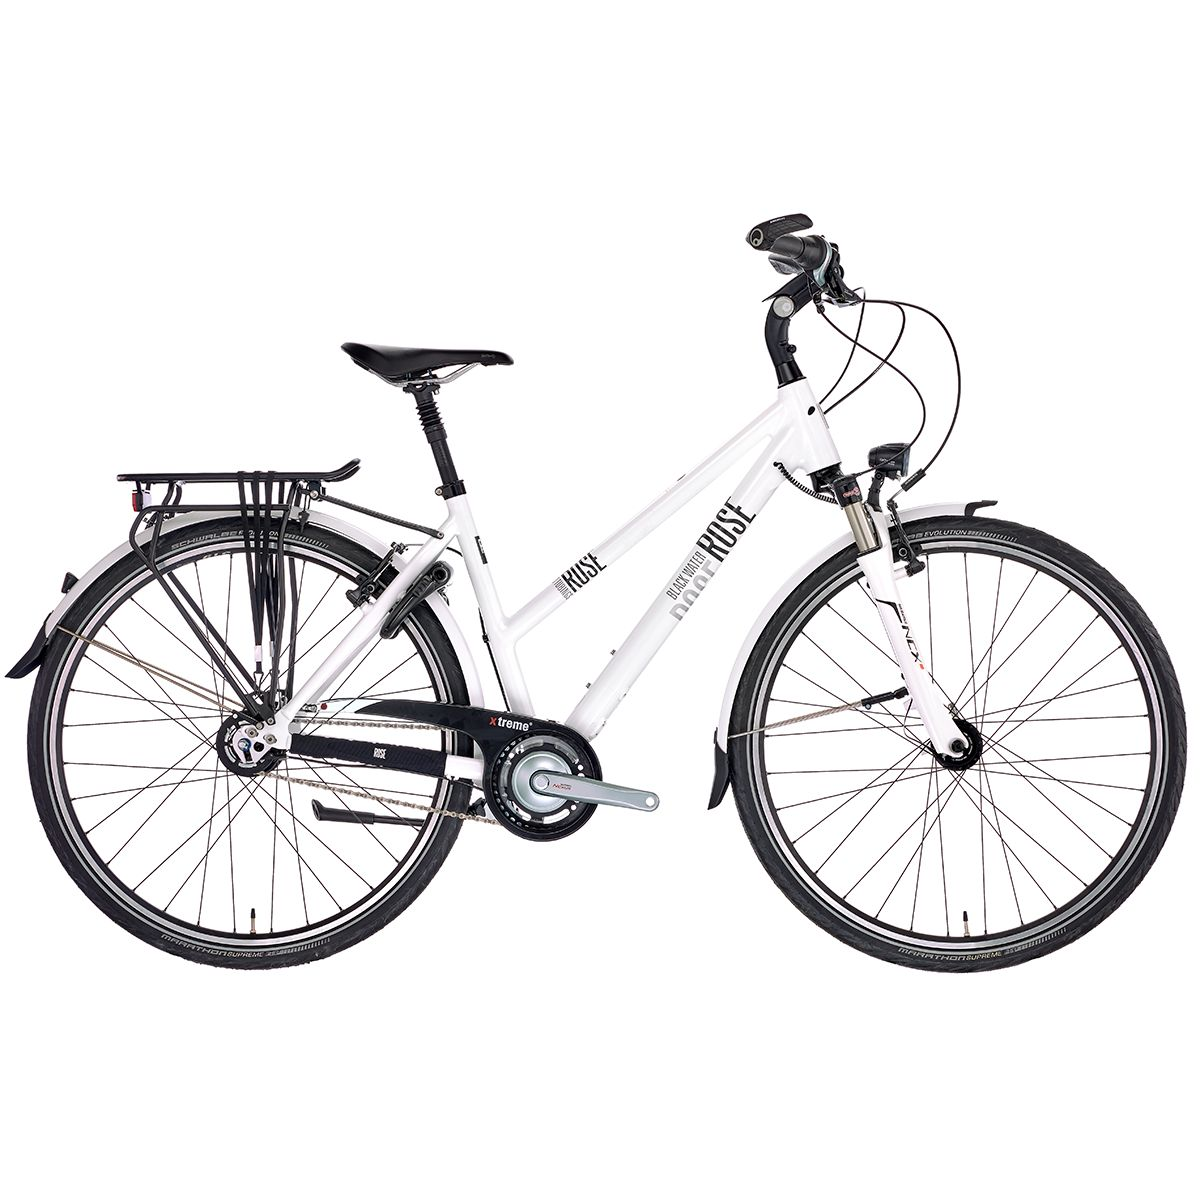 ROSE BLACK WATER-2 LADIES COMFORT showroom bike | City